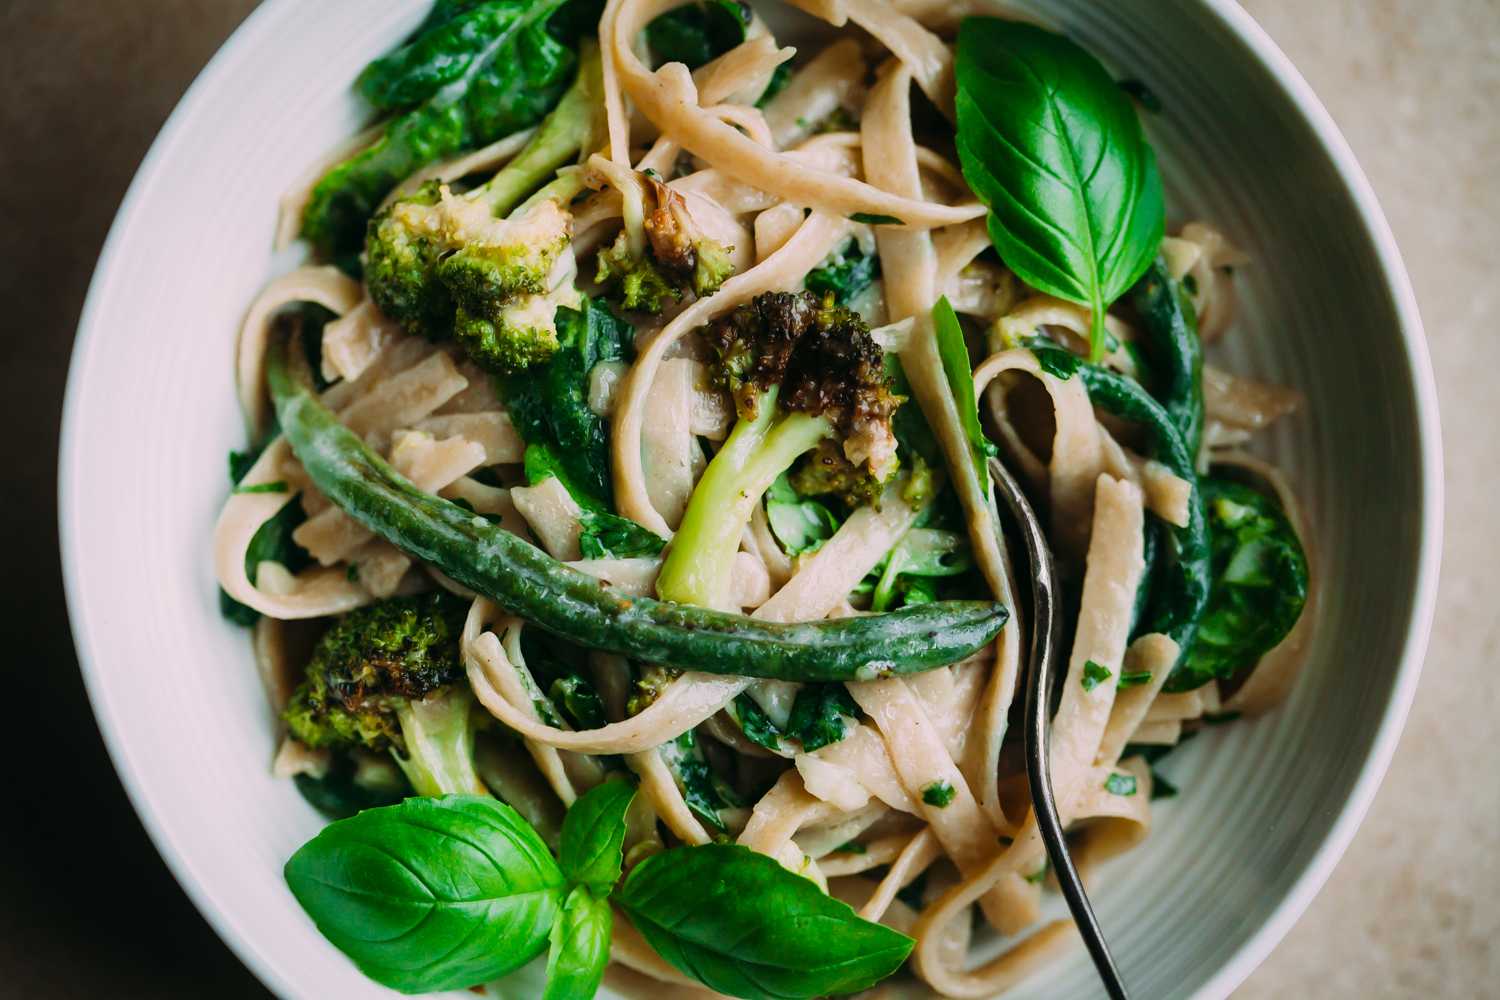 Creamy, Garlicky Fettuccine with Roasted Green Vegetables - Golubka Kitchen